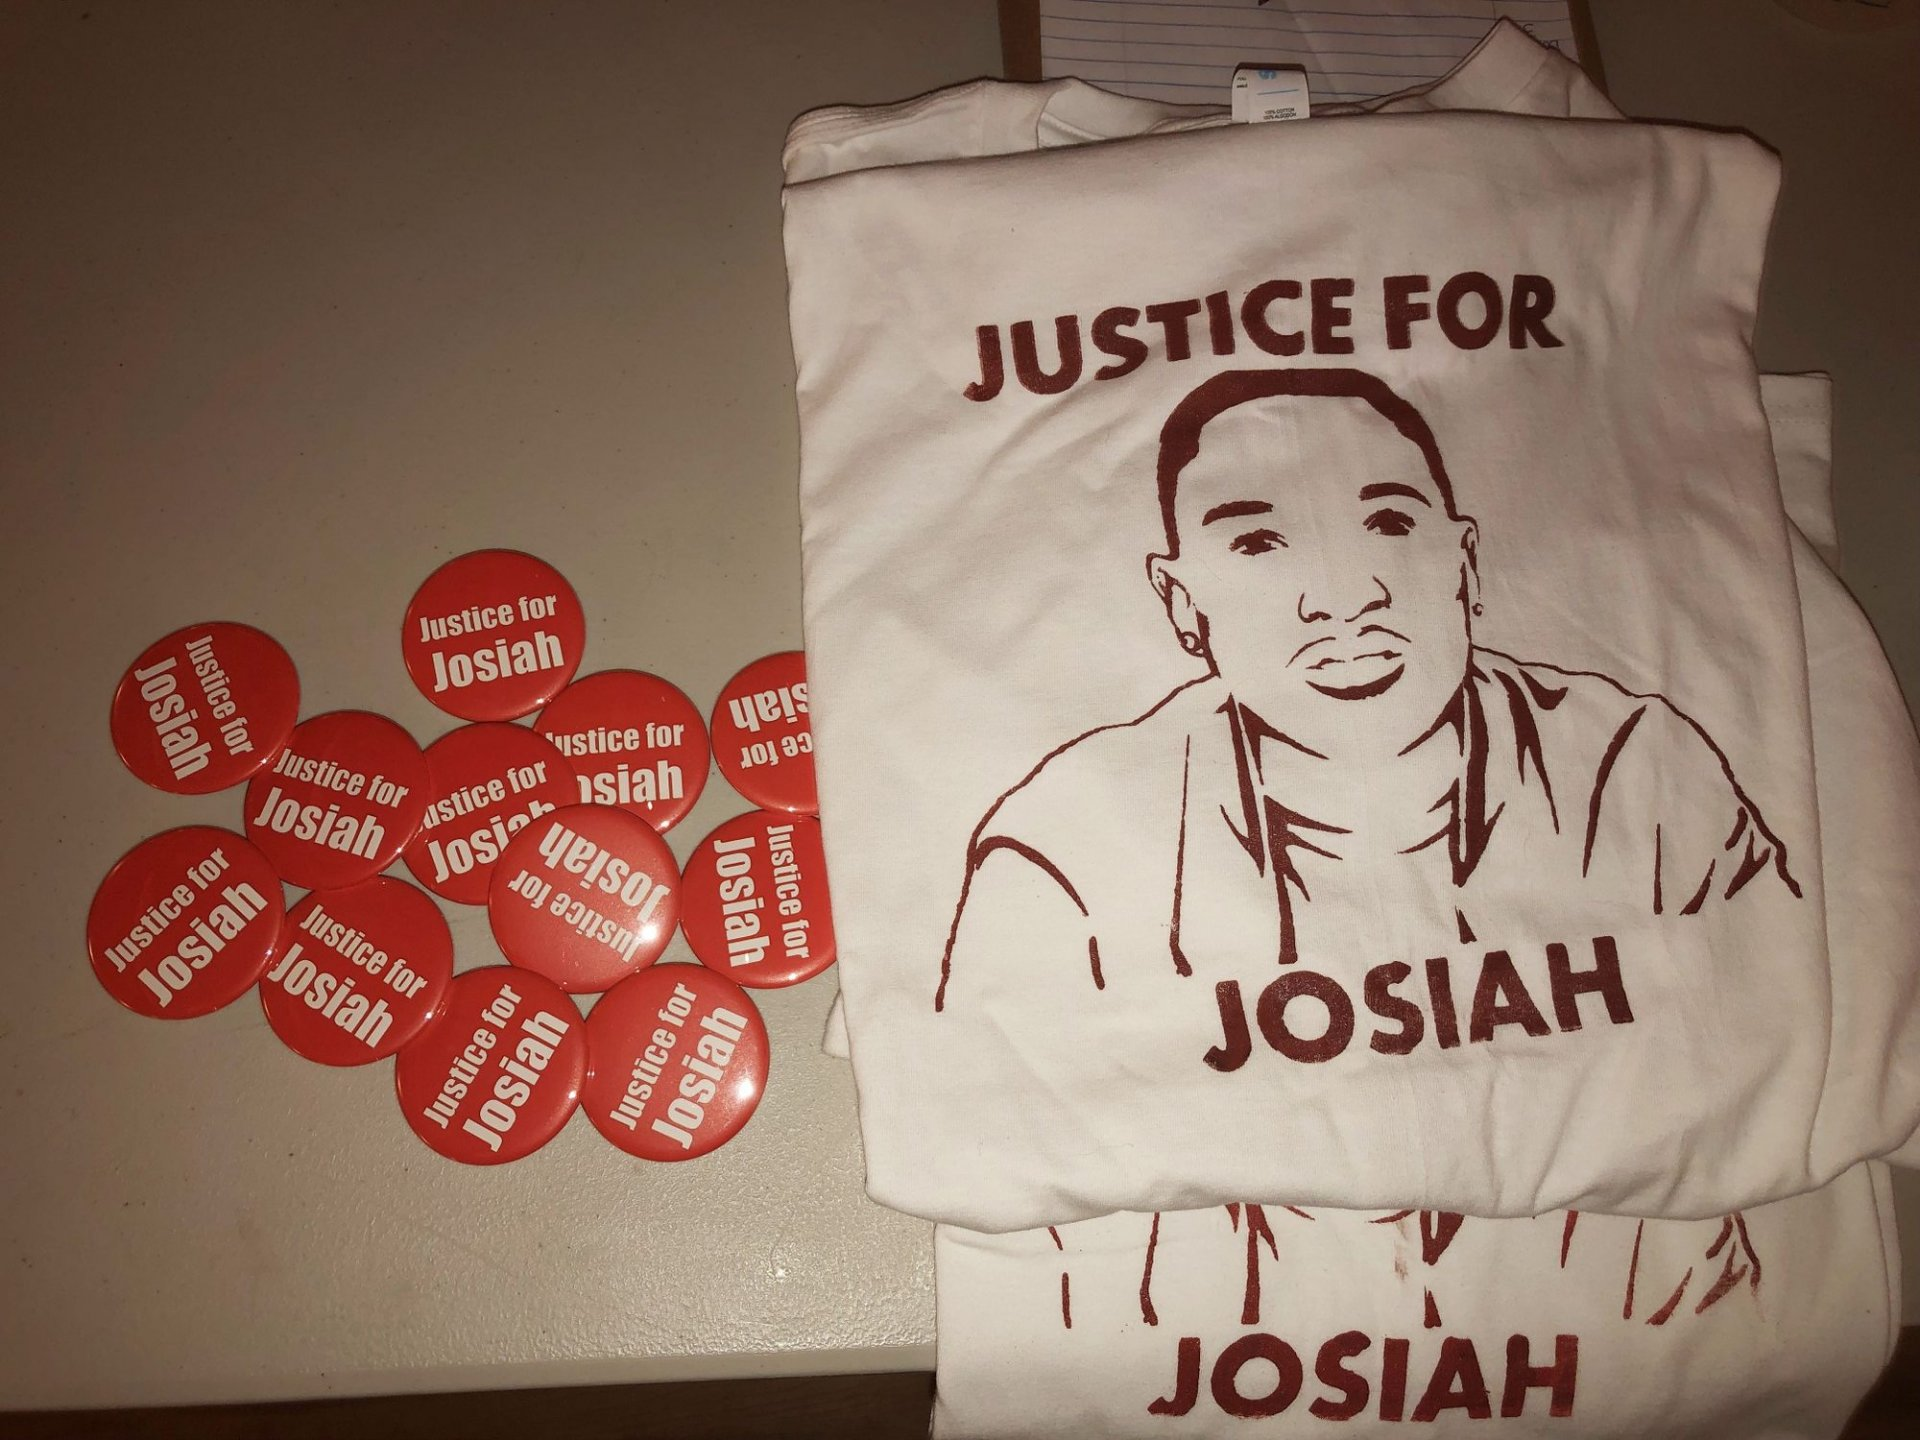 T-shirts and buttons were being sold at the vigil. | Photo by Delaney Duarte